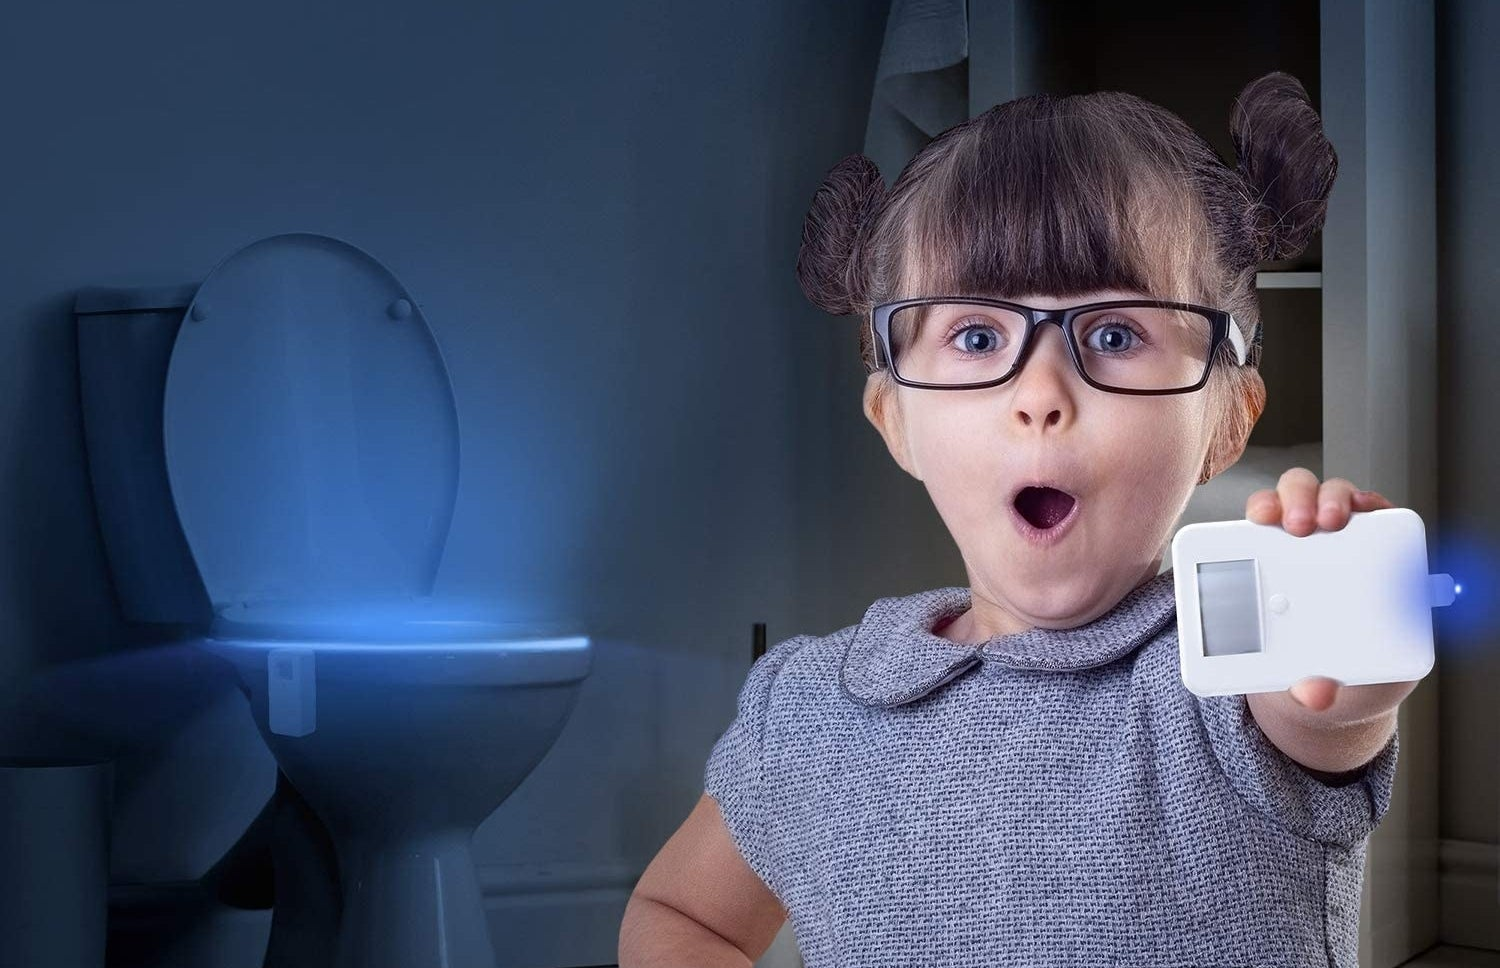 Child model holding toilet light in their hand as blue light glows from toilet